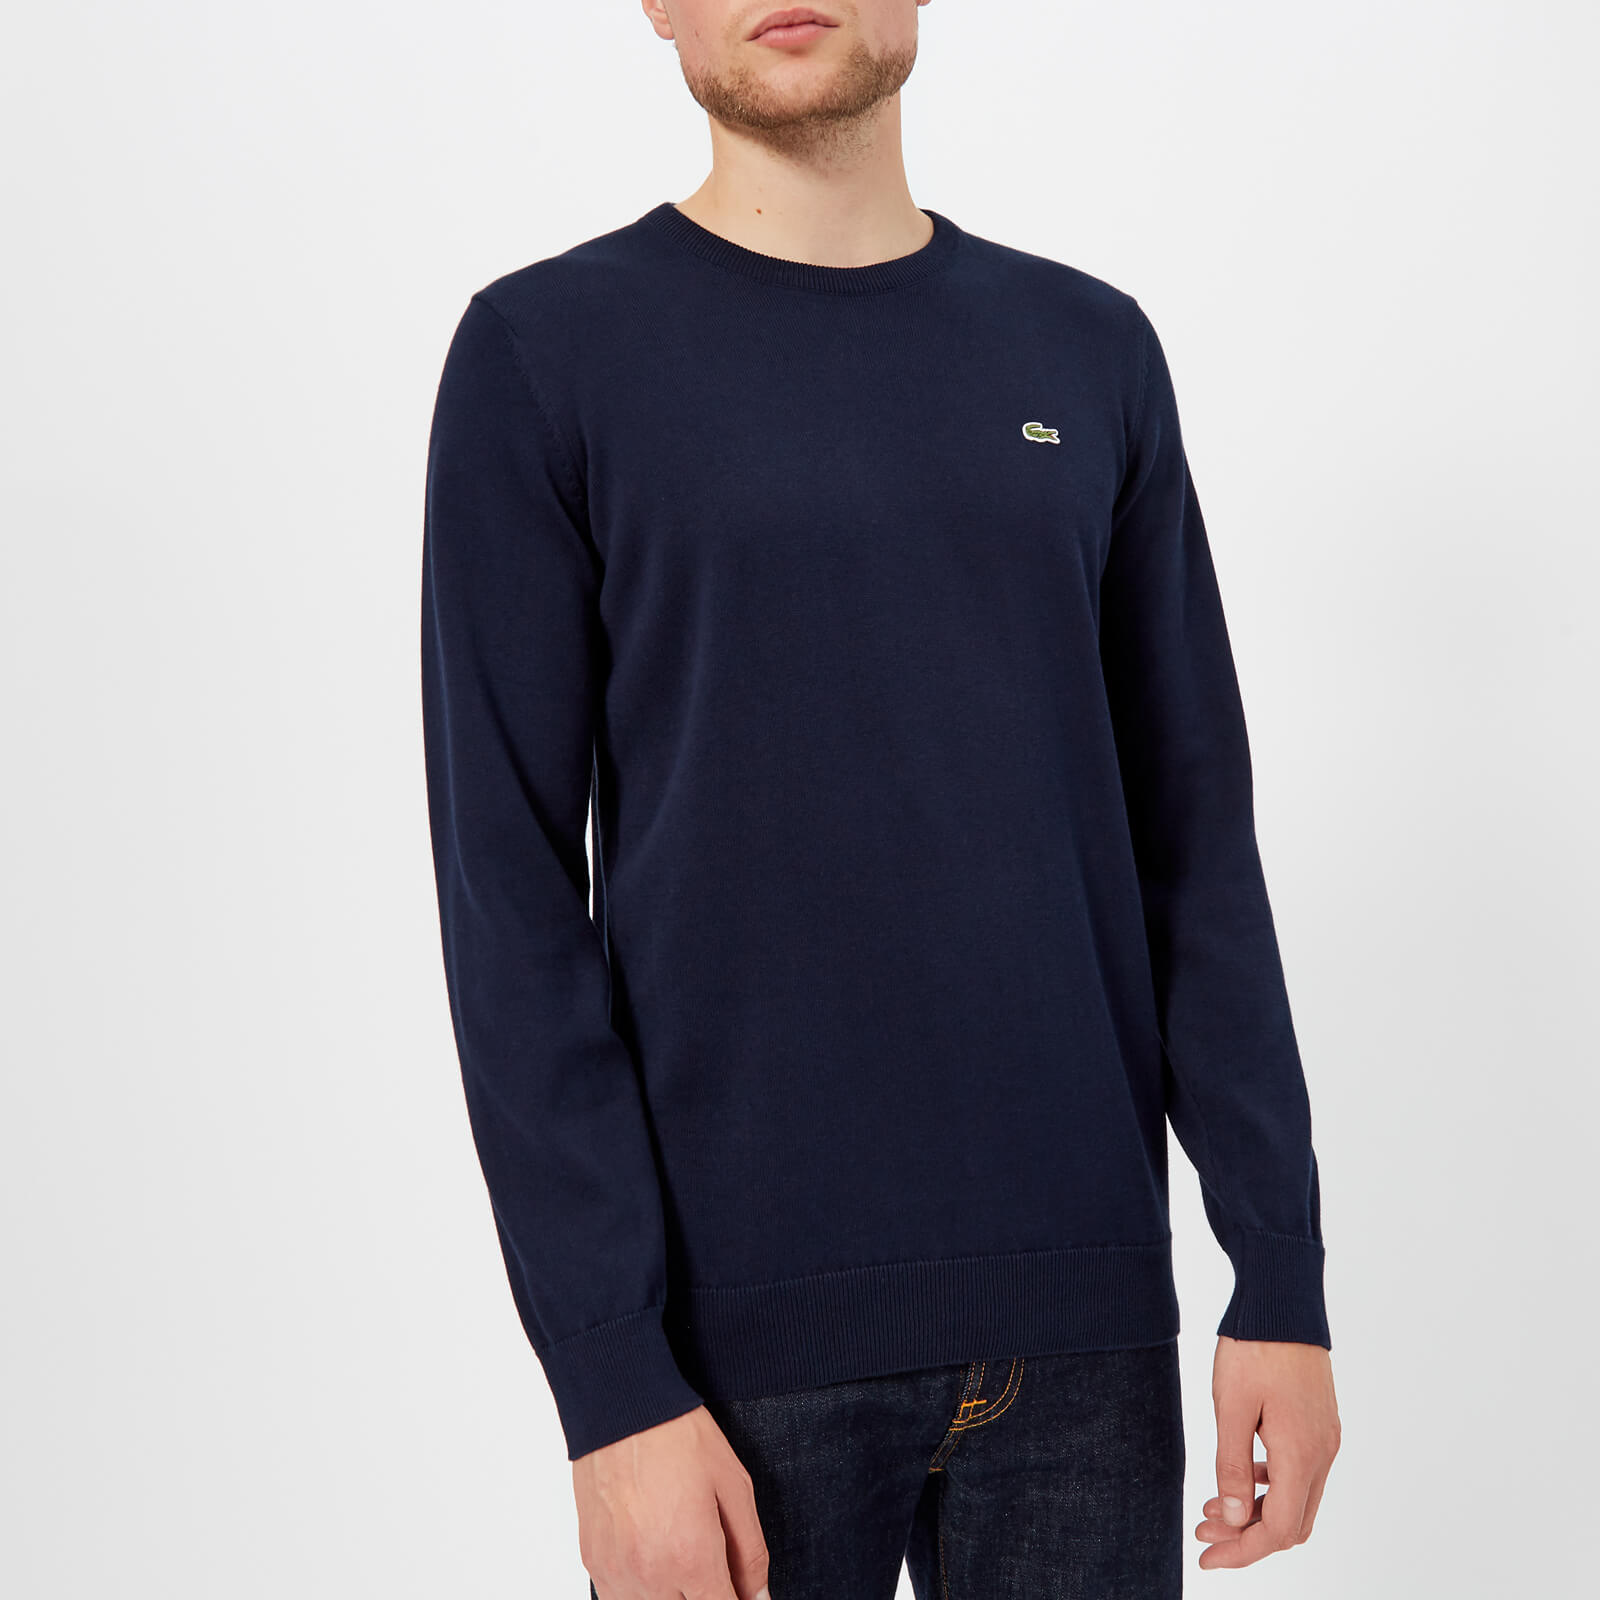 c587ef3ad880 Lacoste Men s Classic Cotton Crew Knit Jumper - Navy Mens Clothing ...